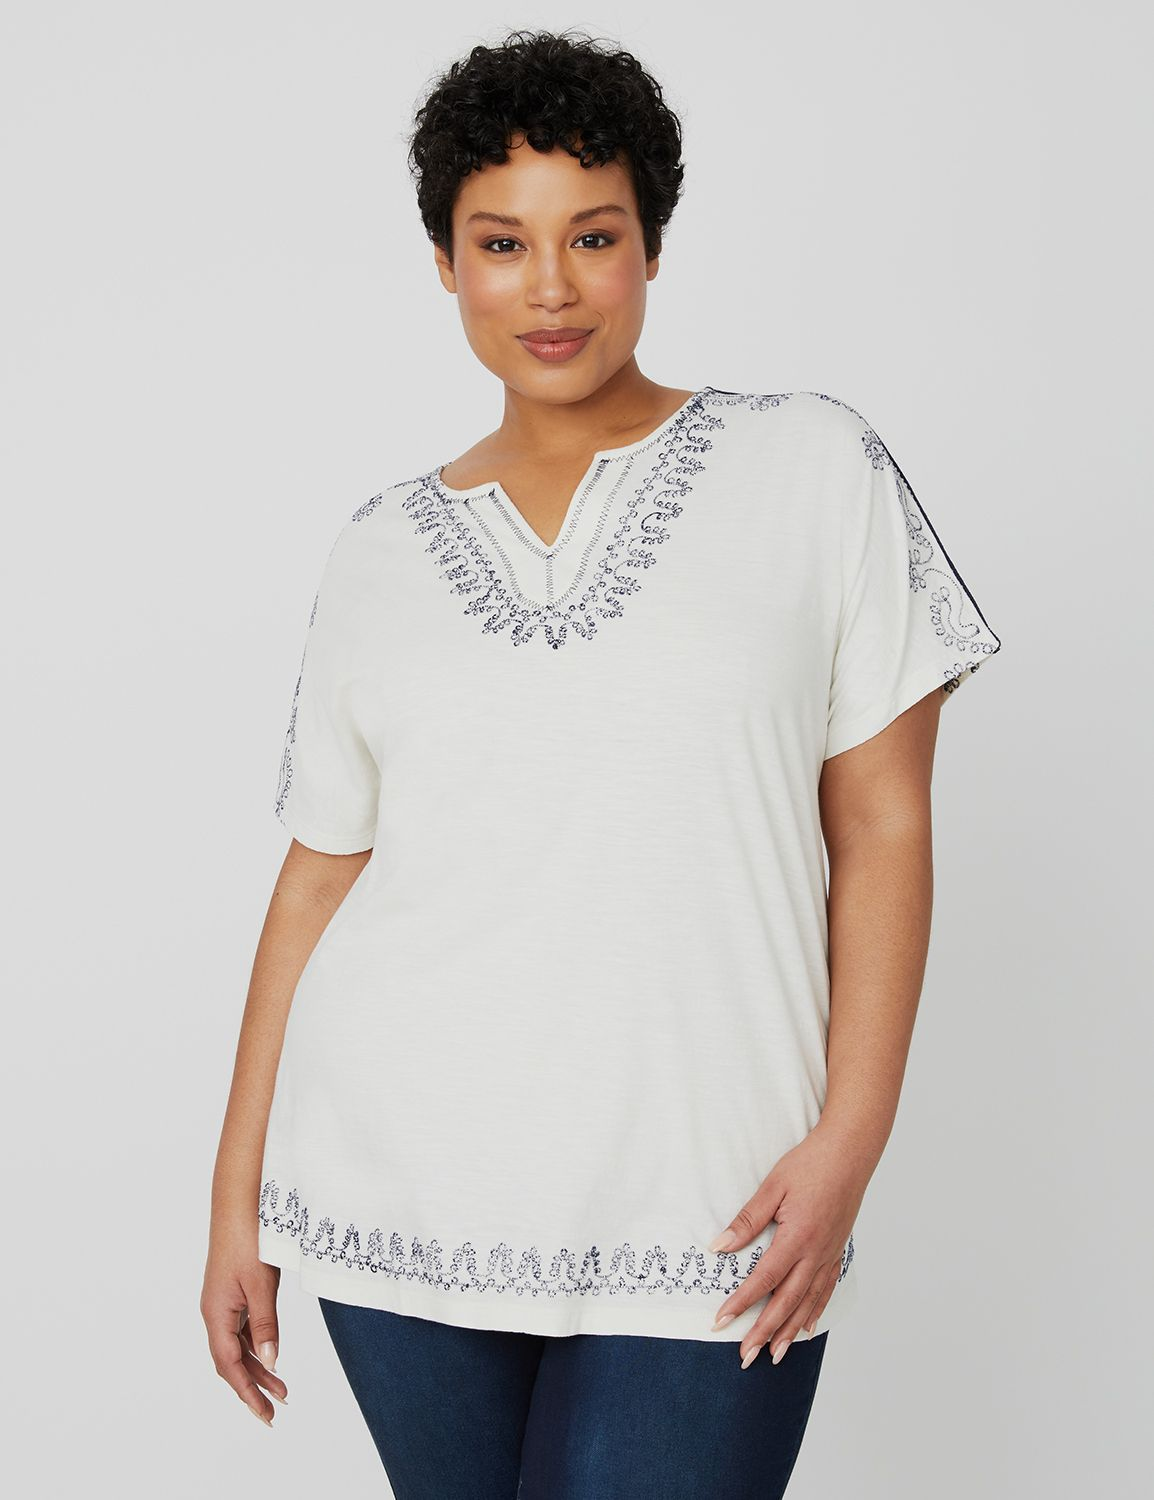 Embroidered Melody Top 1089840 EMBROIDERED SPLIT NECK MP-300099867